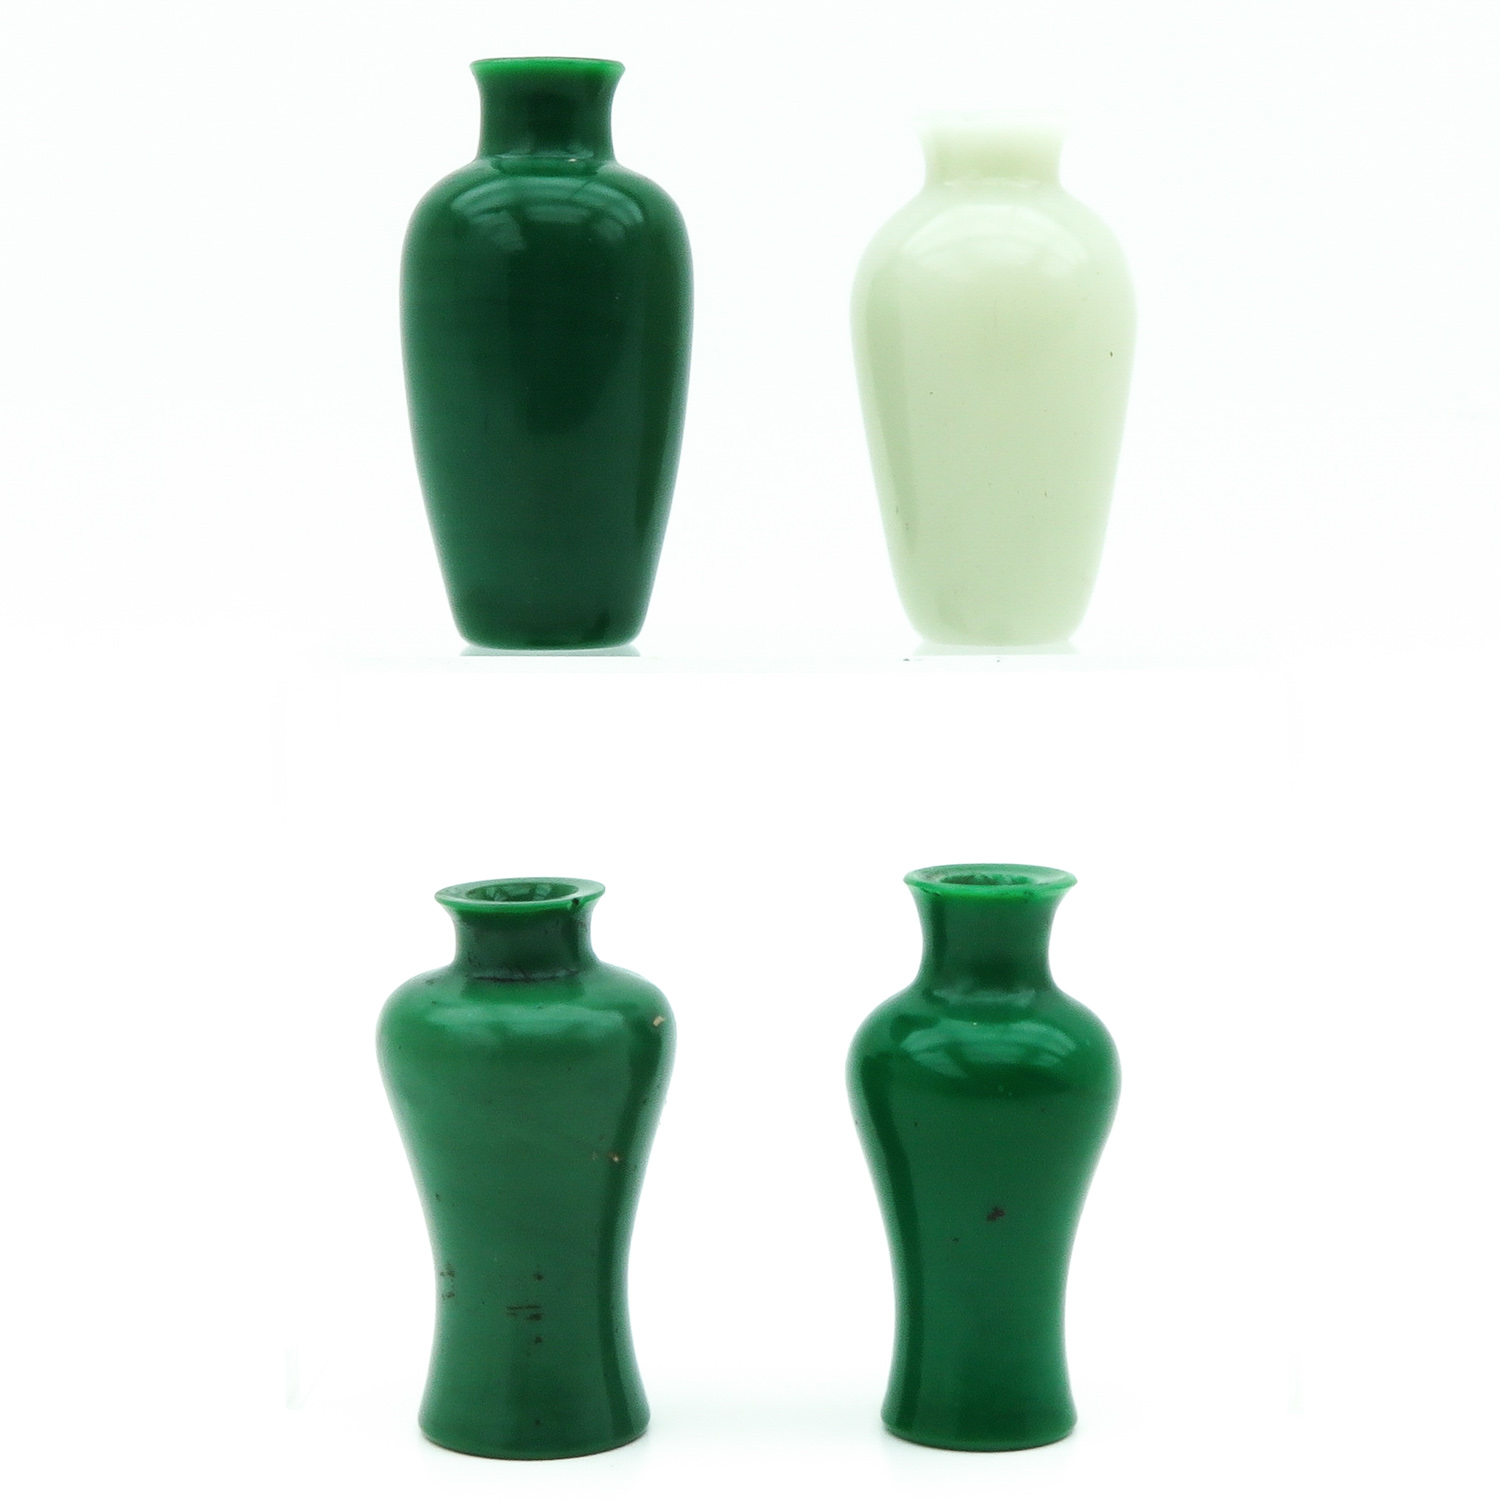 Lot 7044 - A Collection of 4 Jade Vases